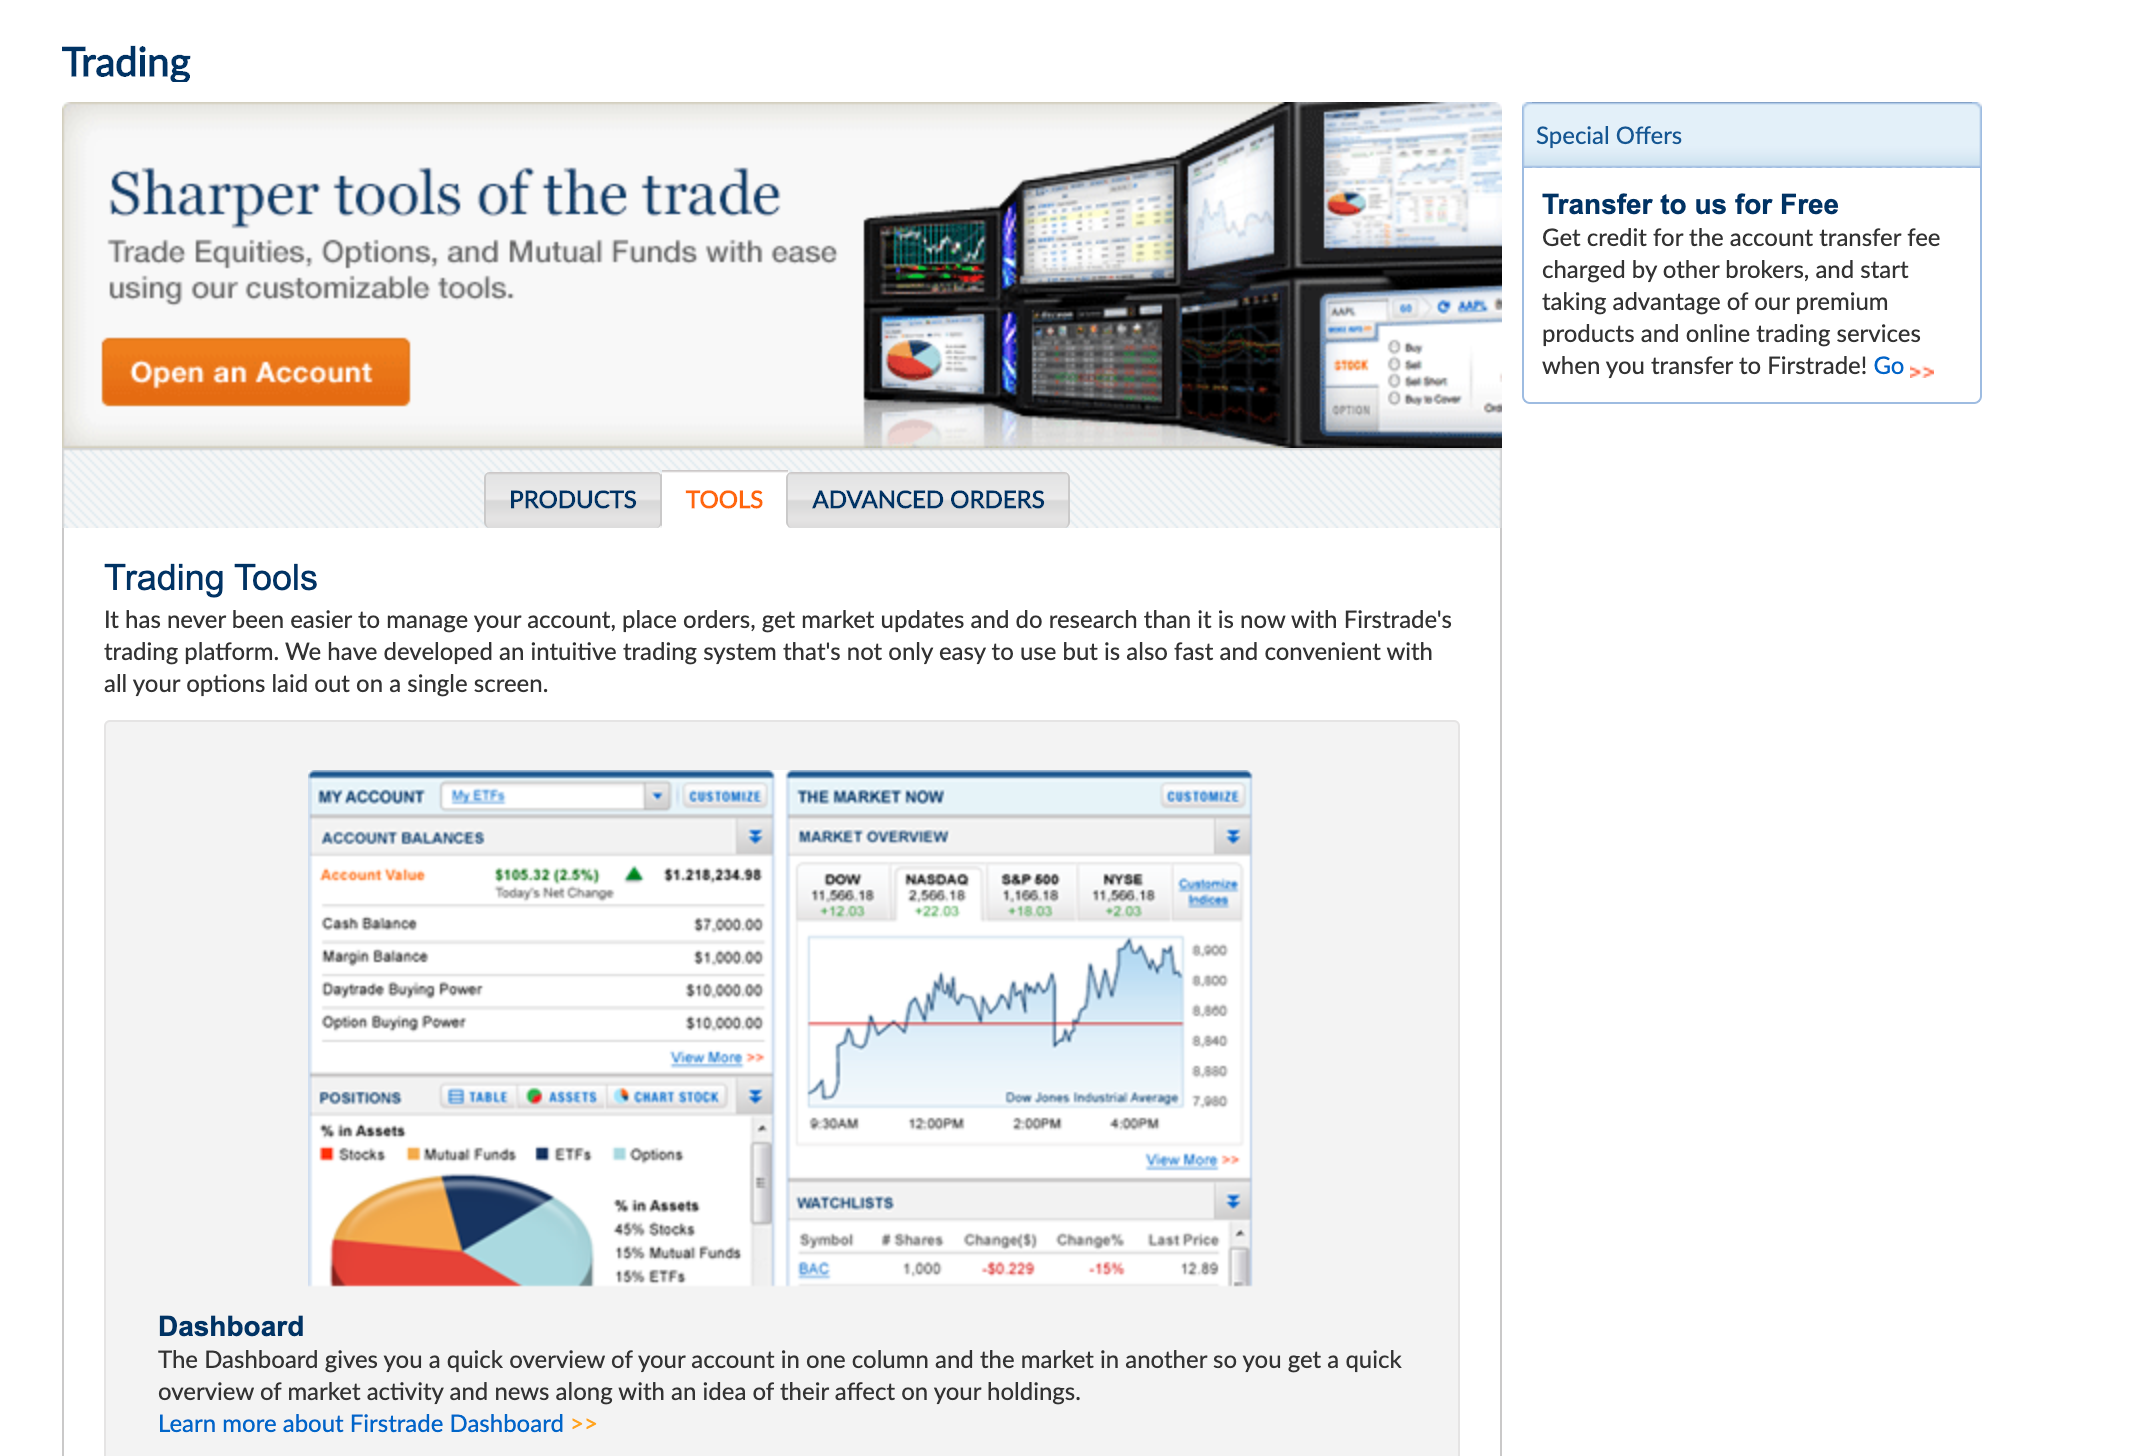 Firstrade trading tools